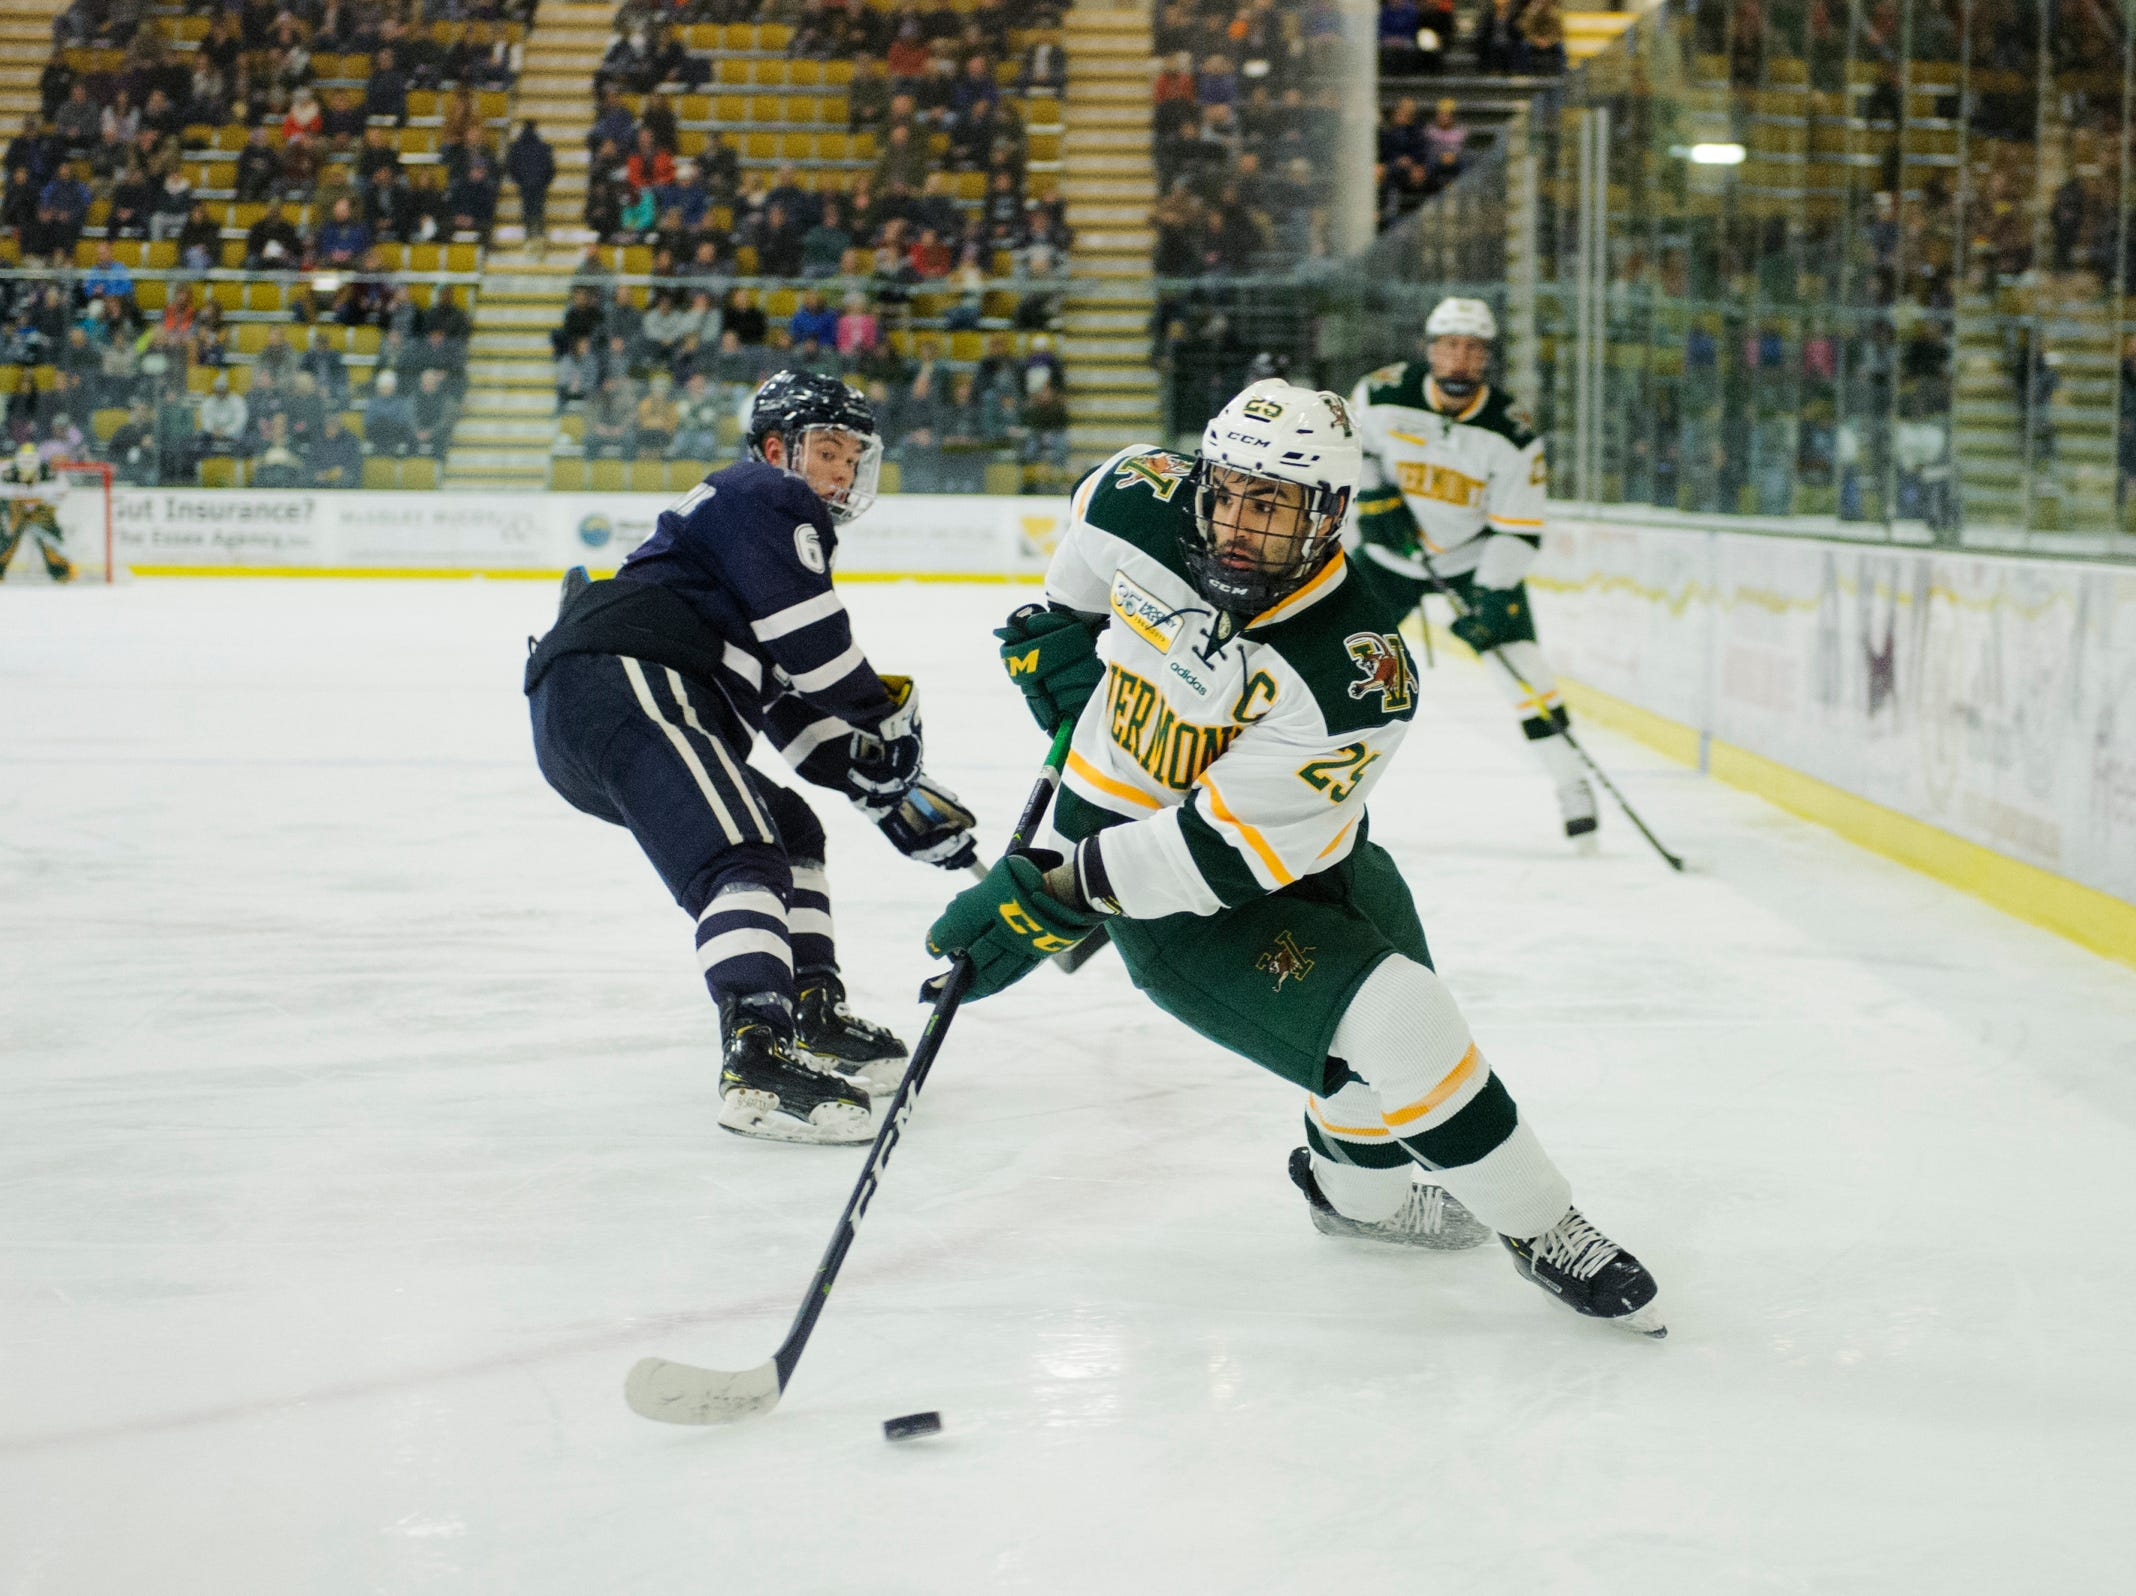 Vermont forward Matt Alvaro (25) skates with the puck during the men's hockey game between the New Hampshire Wildcats and the Vermont Catamounts at Gutterson Field House on Friday night February 8, 2019 in Burlington, Vermont.